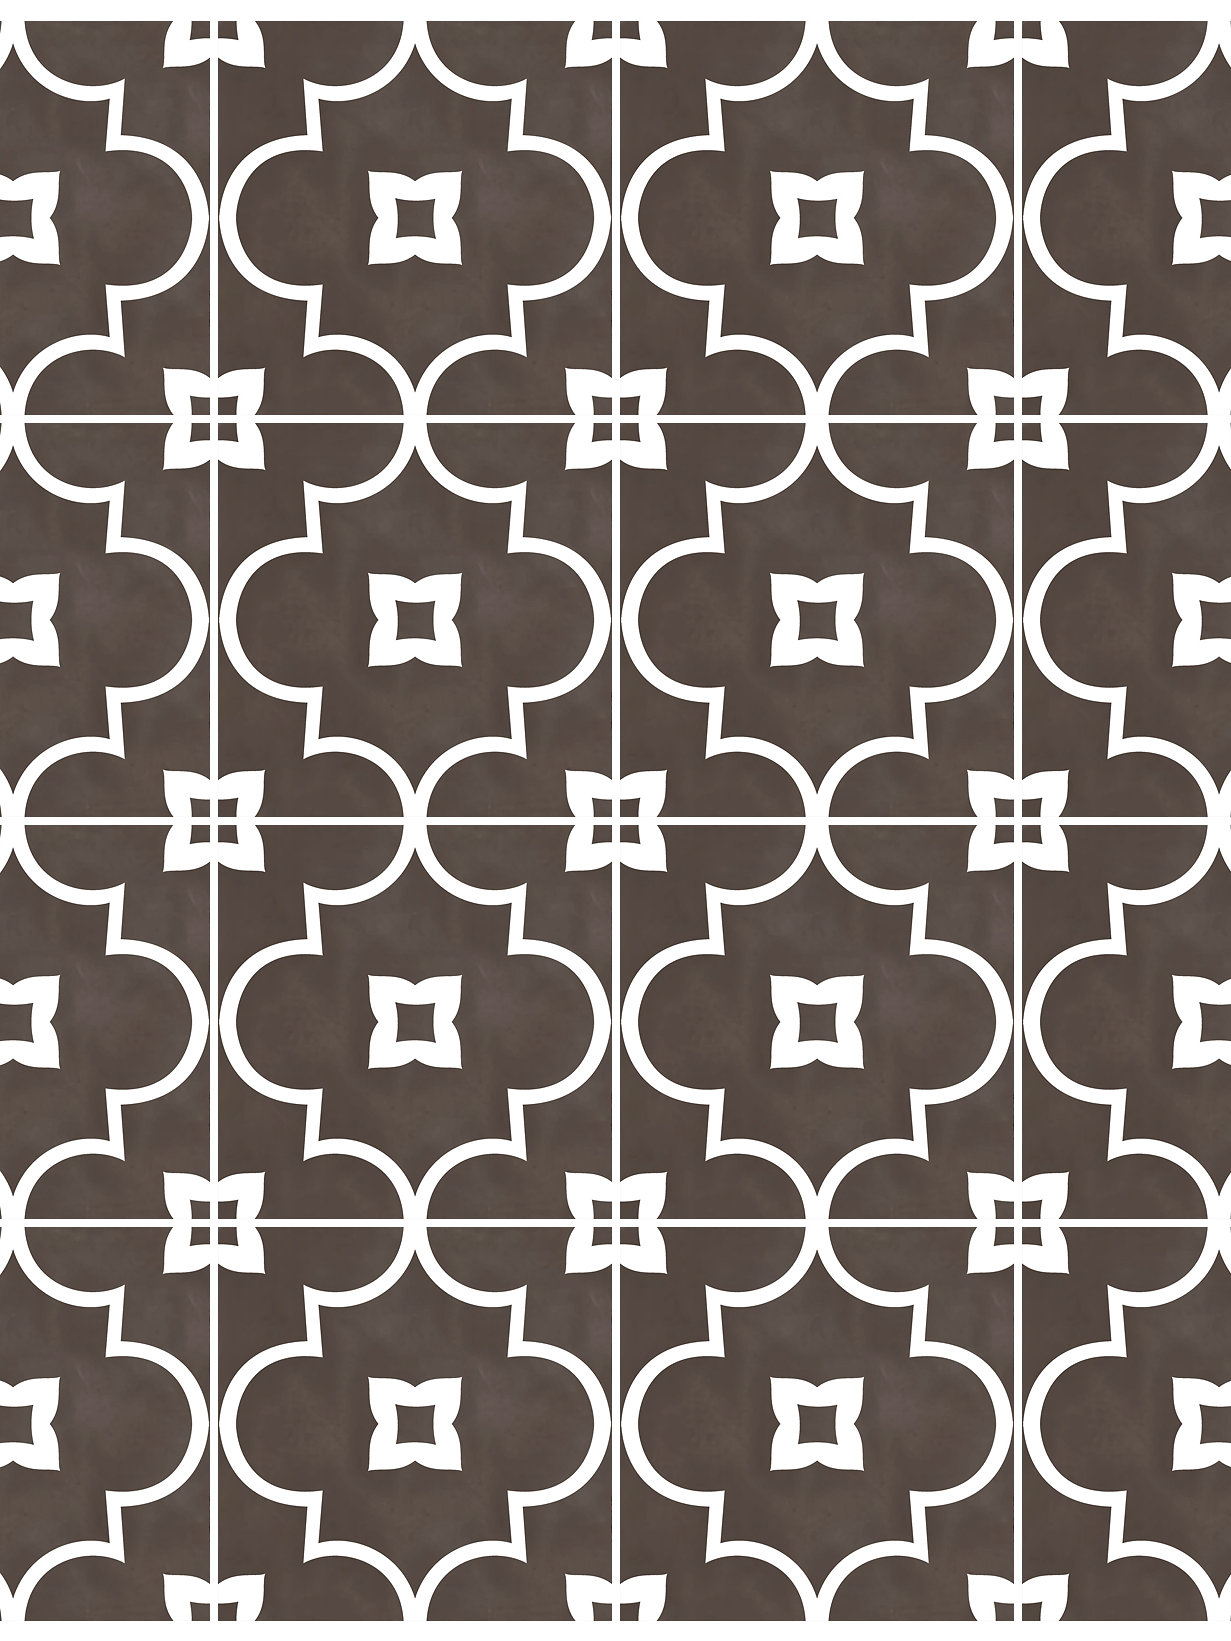 Tile decals quadrostyle vinyl floor tile sticker zellige cafe quadrostyle offers you a new way to renovate your floors without hiring a tradesman our vinyl floor tile stickers are designed to cover your old floor dailygadgetfo Choice Image